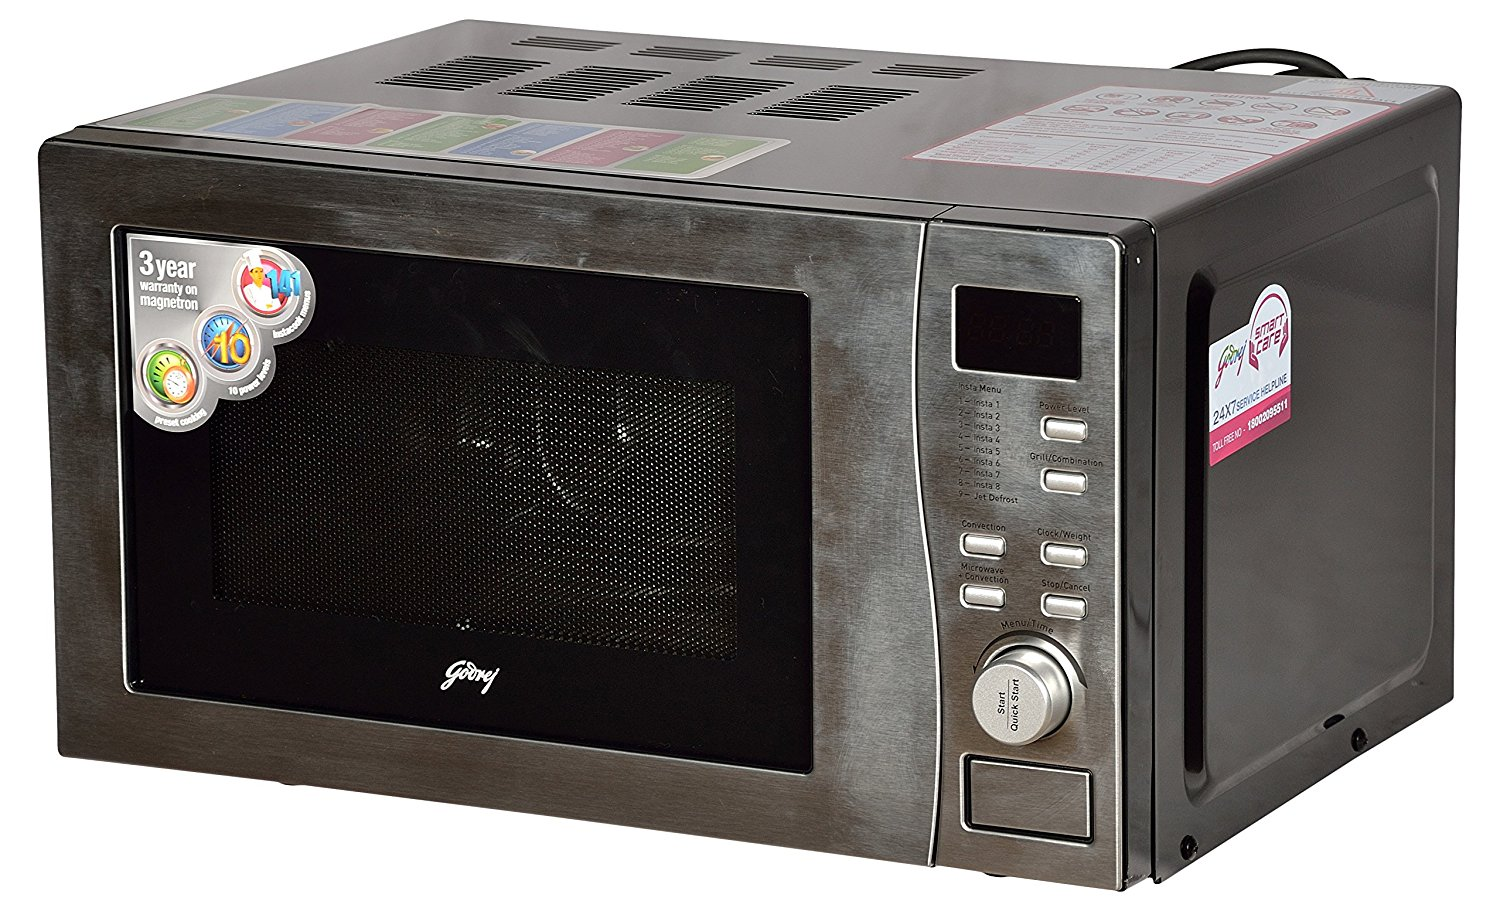 Godrej 20 L Convection Microwave Oven Gmx20ca6plz Clear